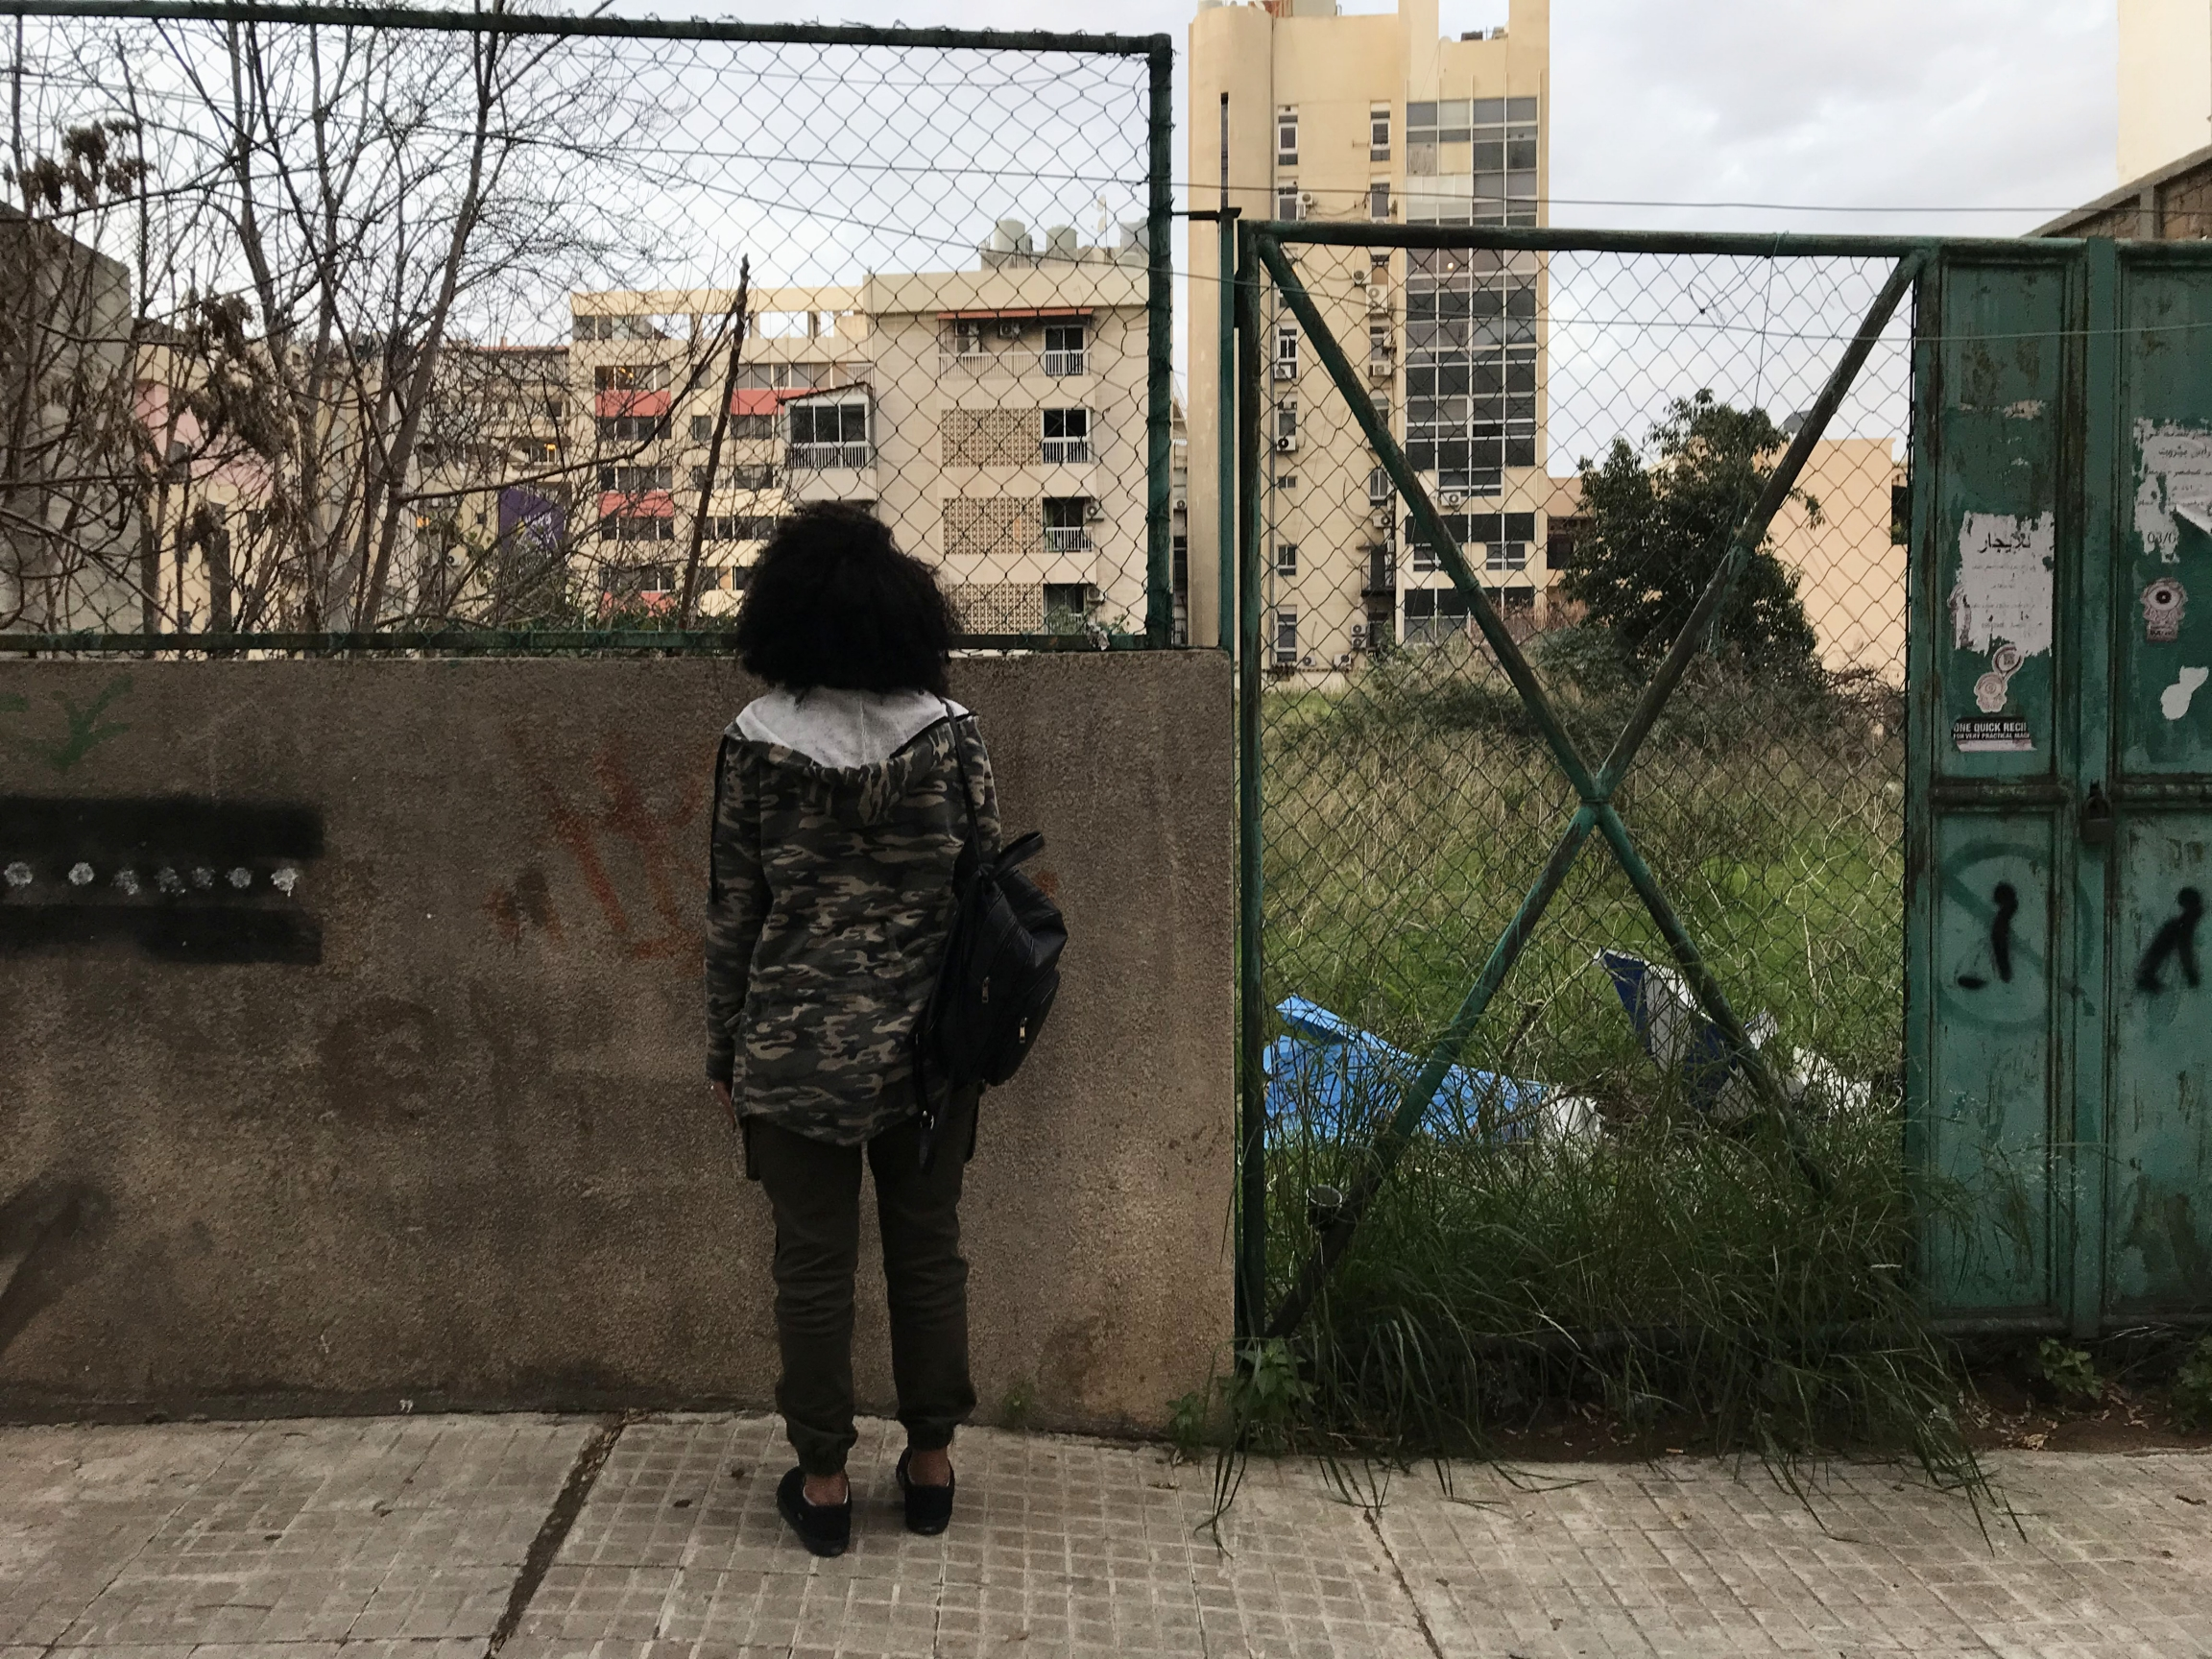 A young woman stands outside looking out at apartment buildings